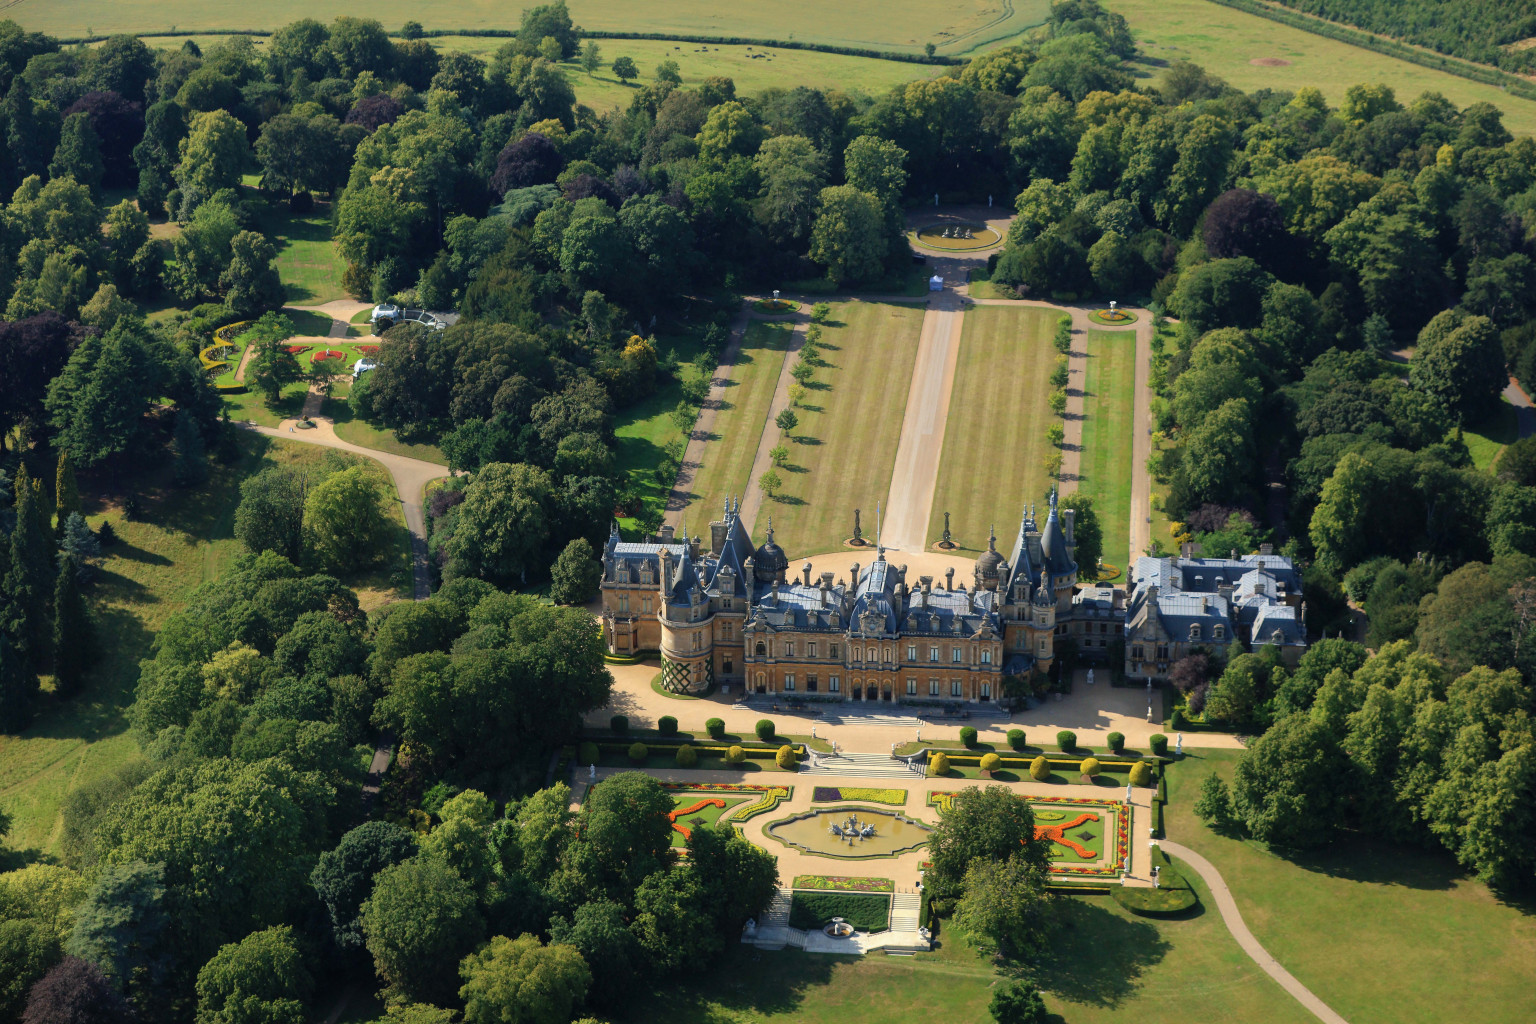 Aerial view of Waddesdon